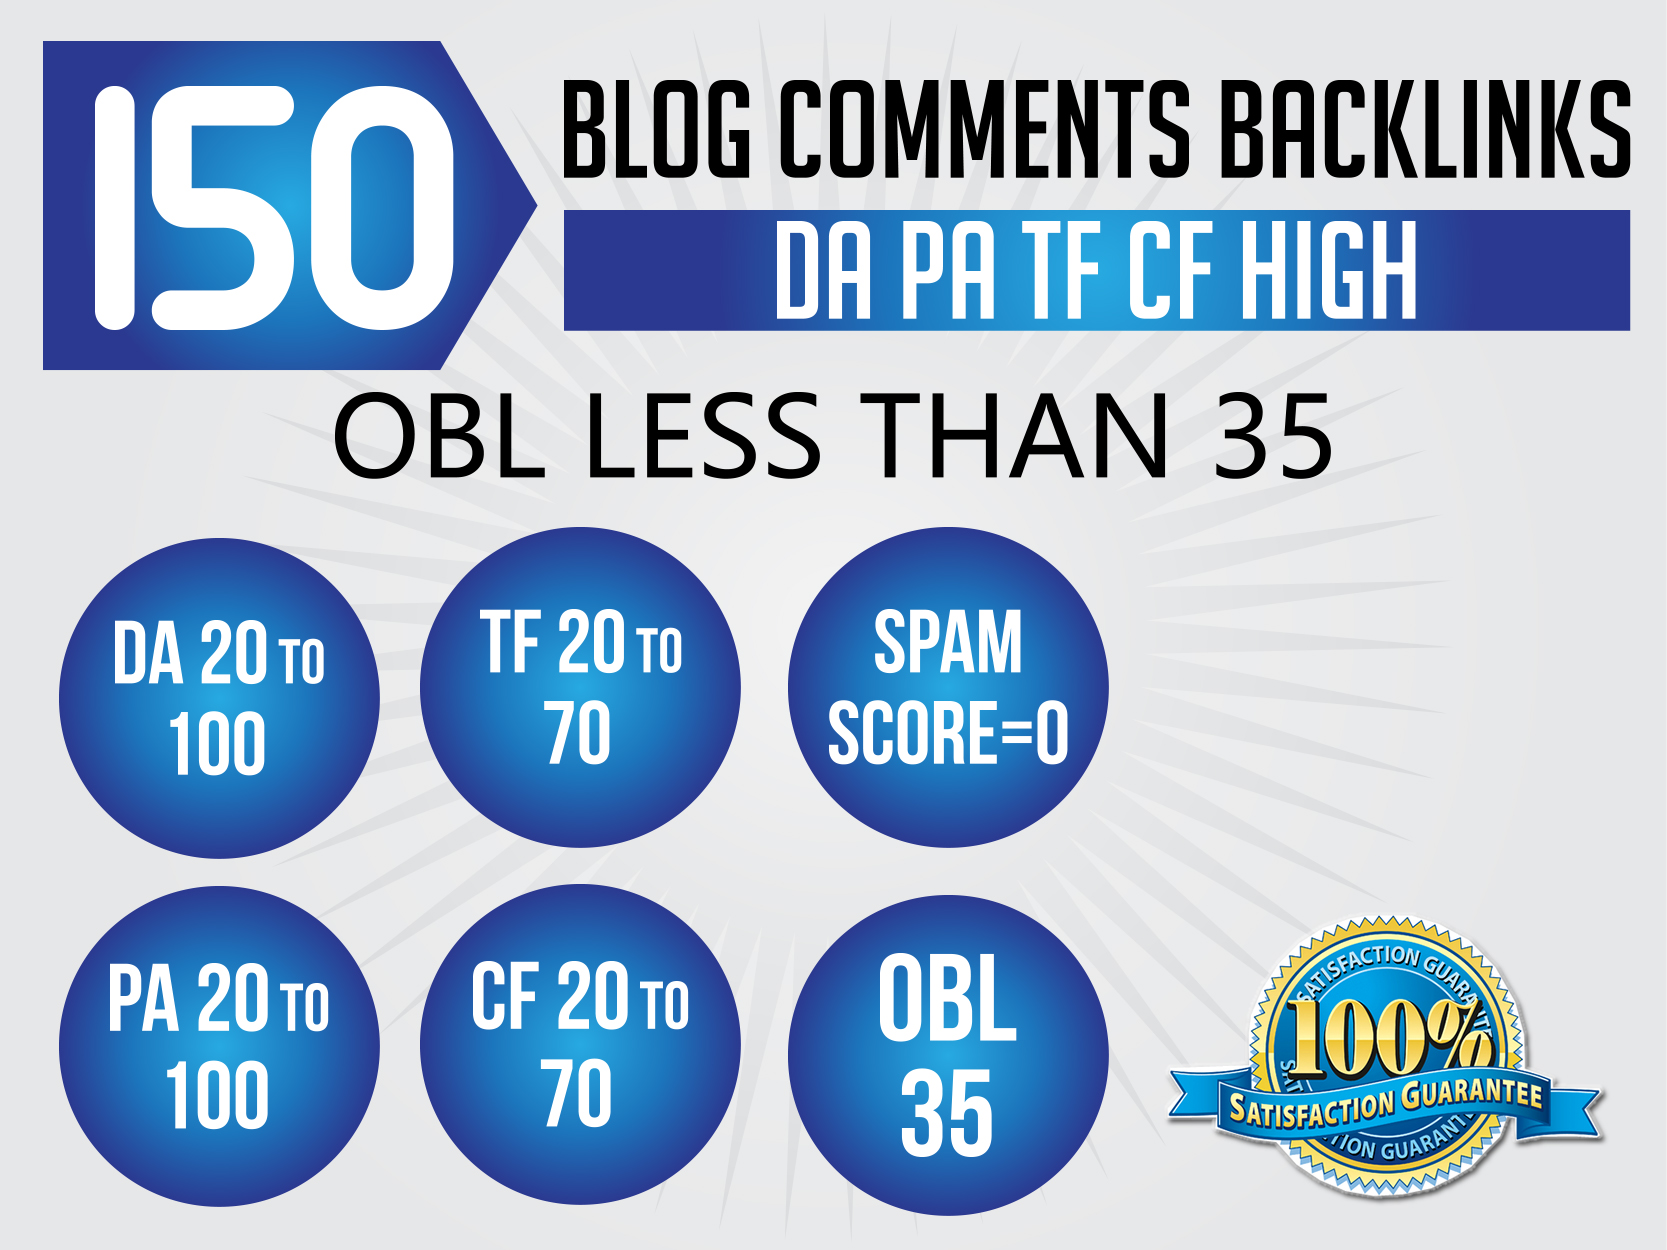 i Will Creat 150 Uniqe Domain BackLinks With High DA And PA Low Obl Pages.